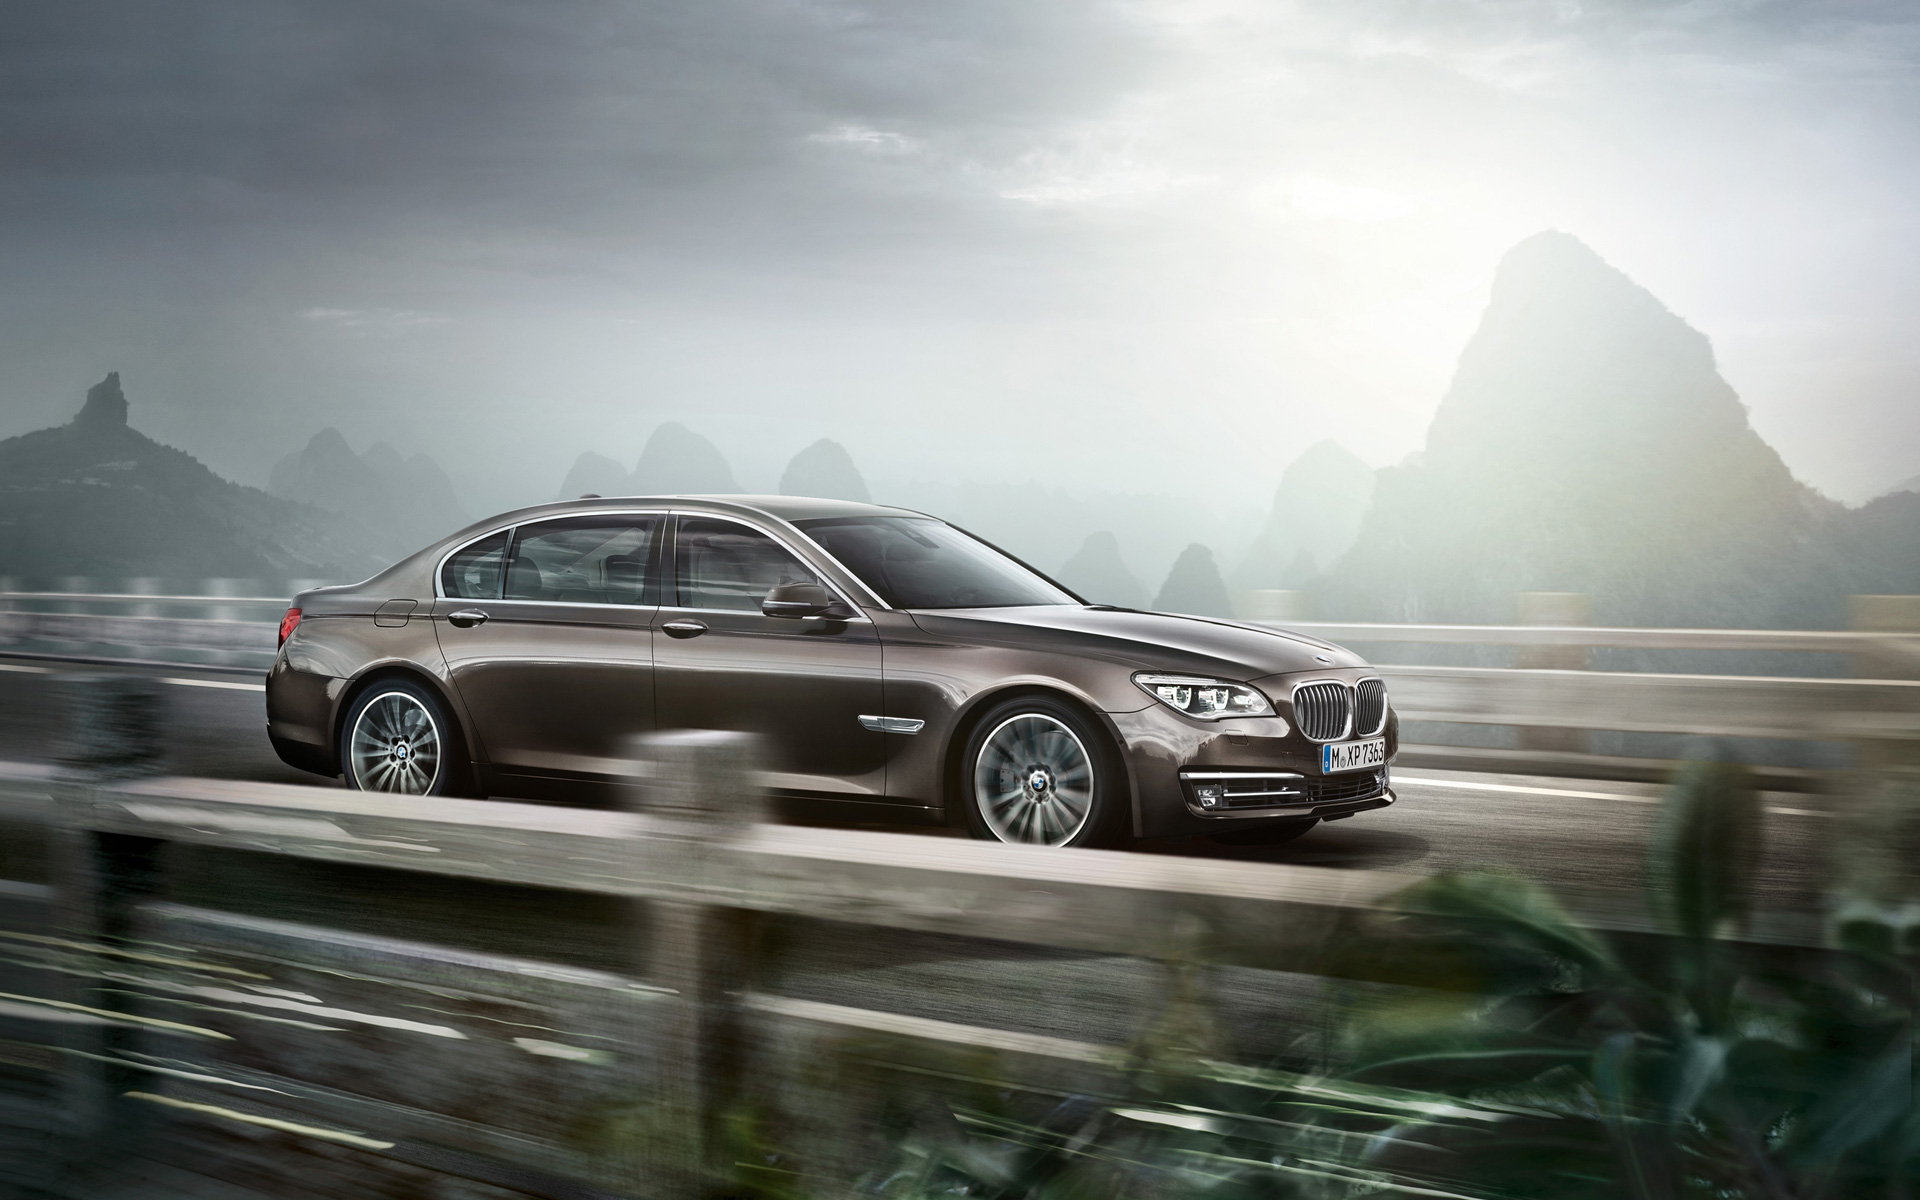 [Image: BMW-7-Series-Wallpaper-03-1920x1200.jpg]